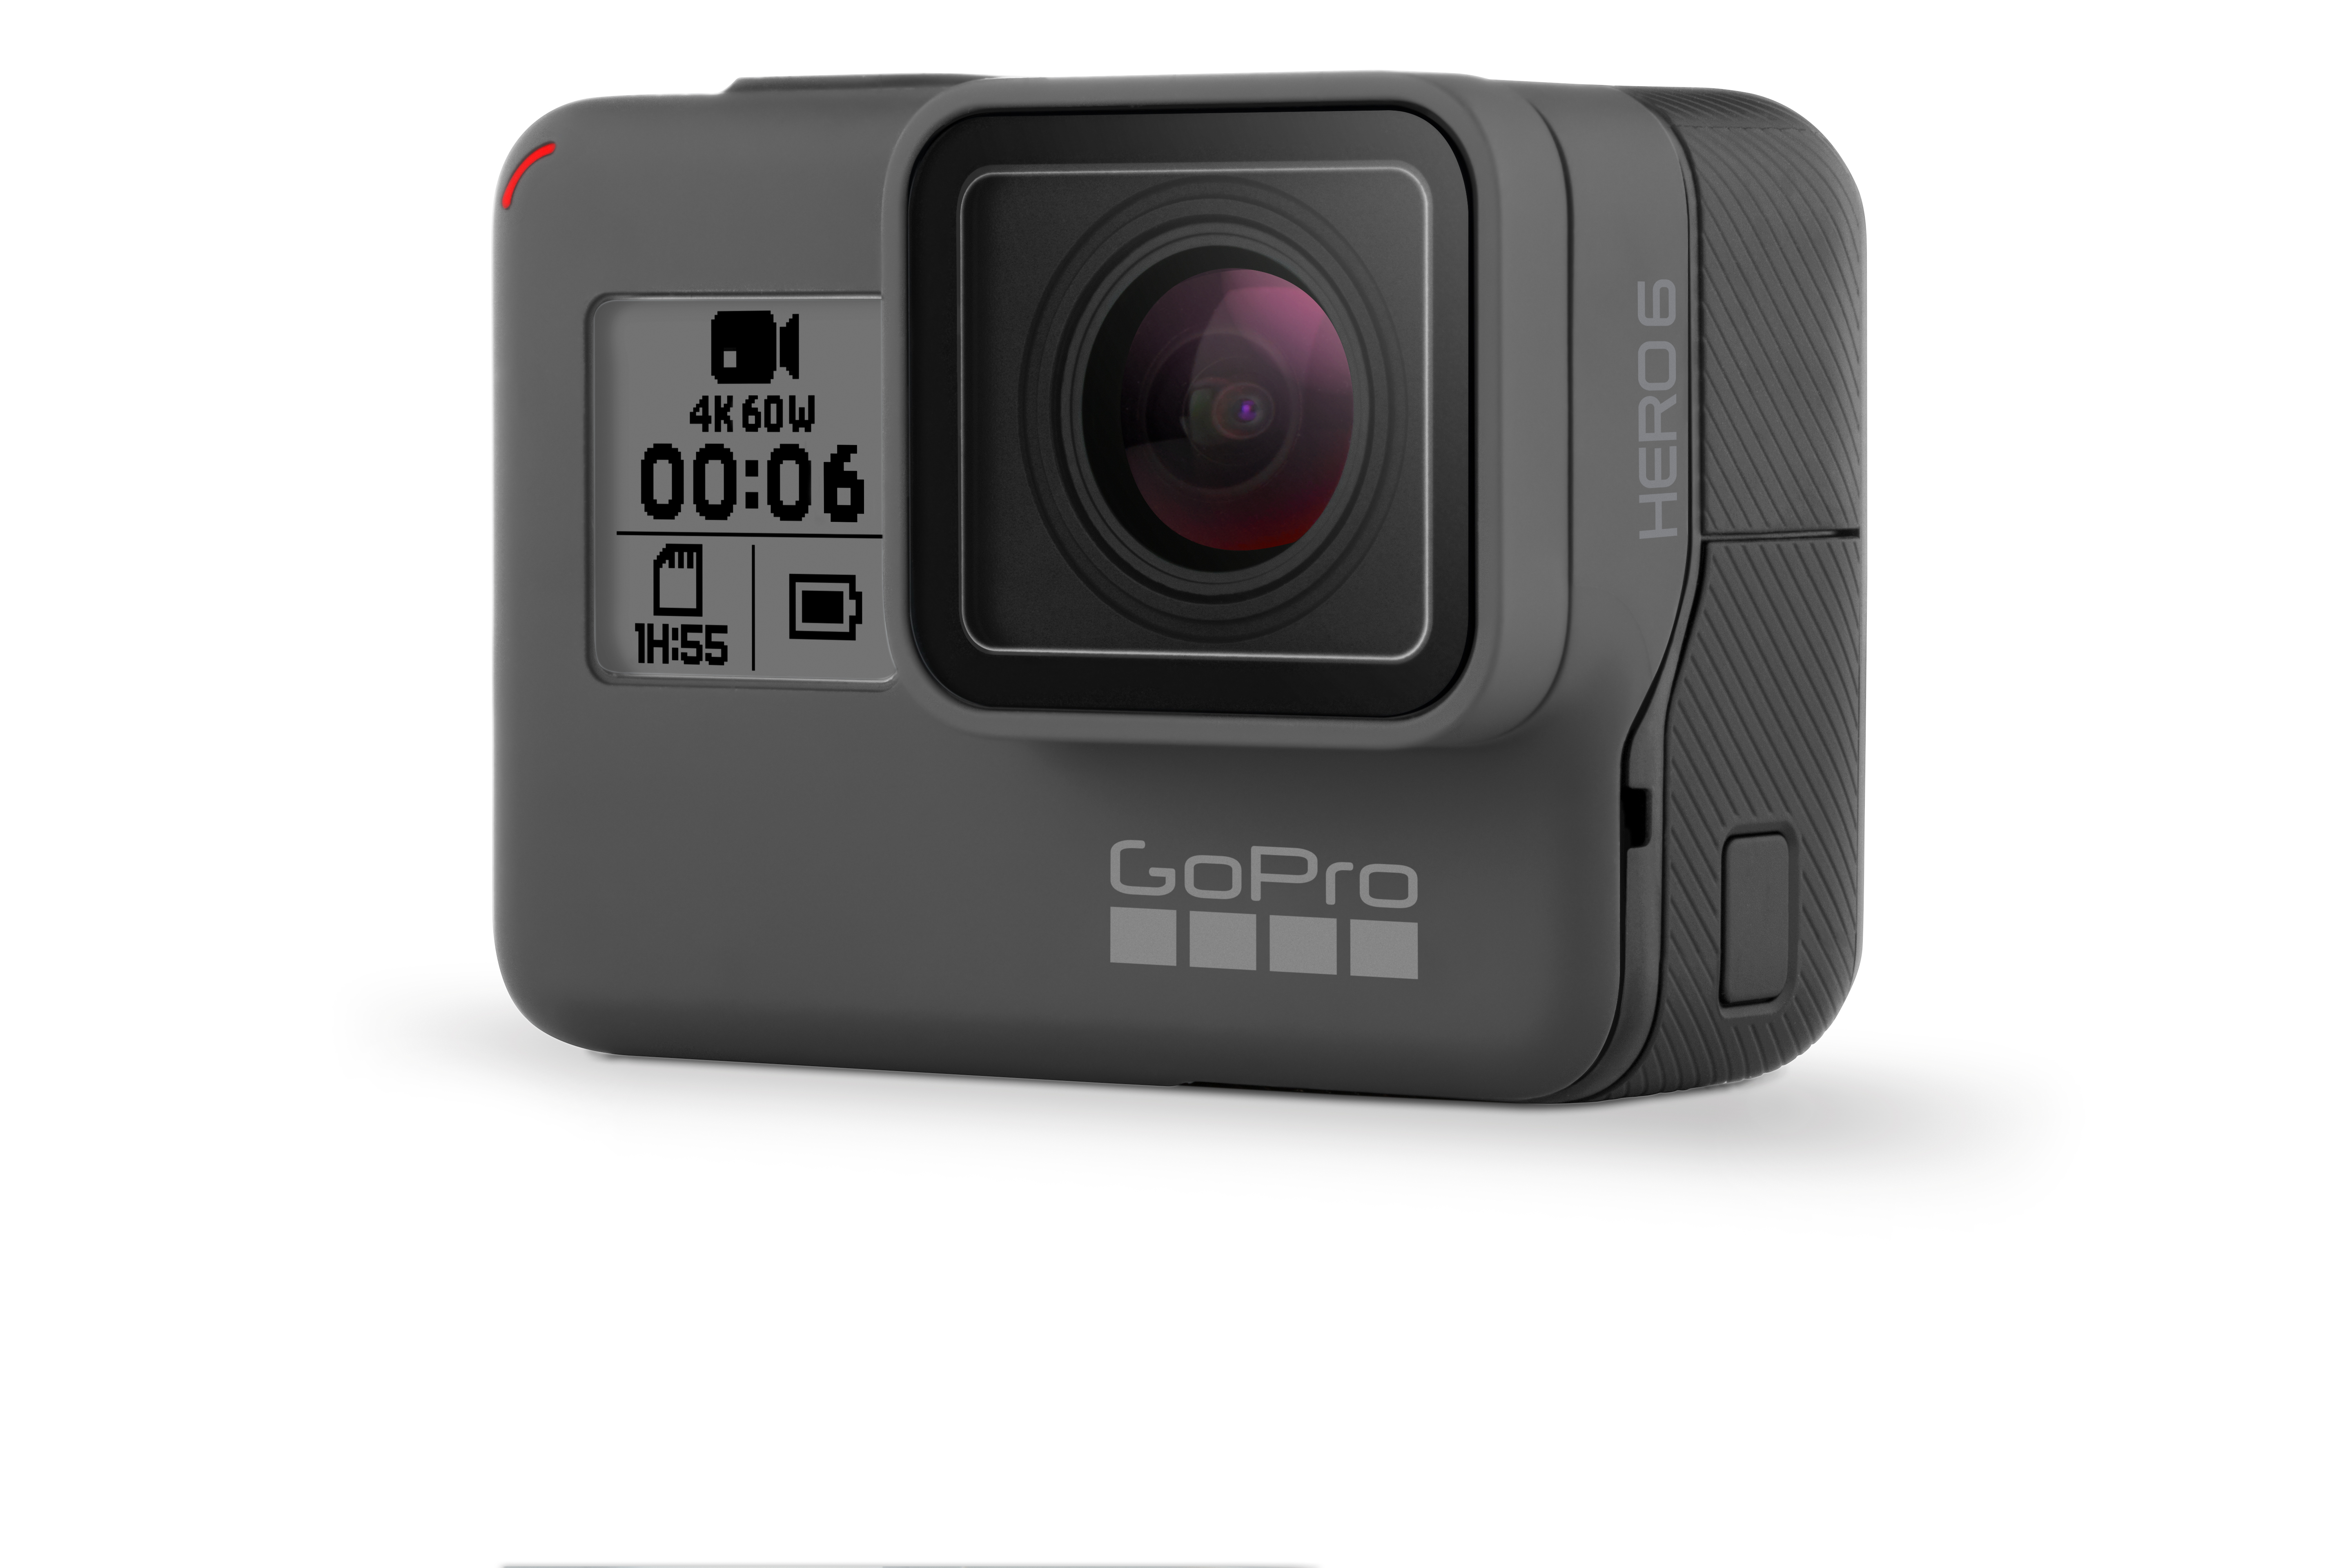 GoPro Hero 6 Black shoots faster 4K video than your DSLR